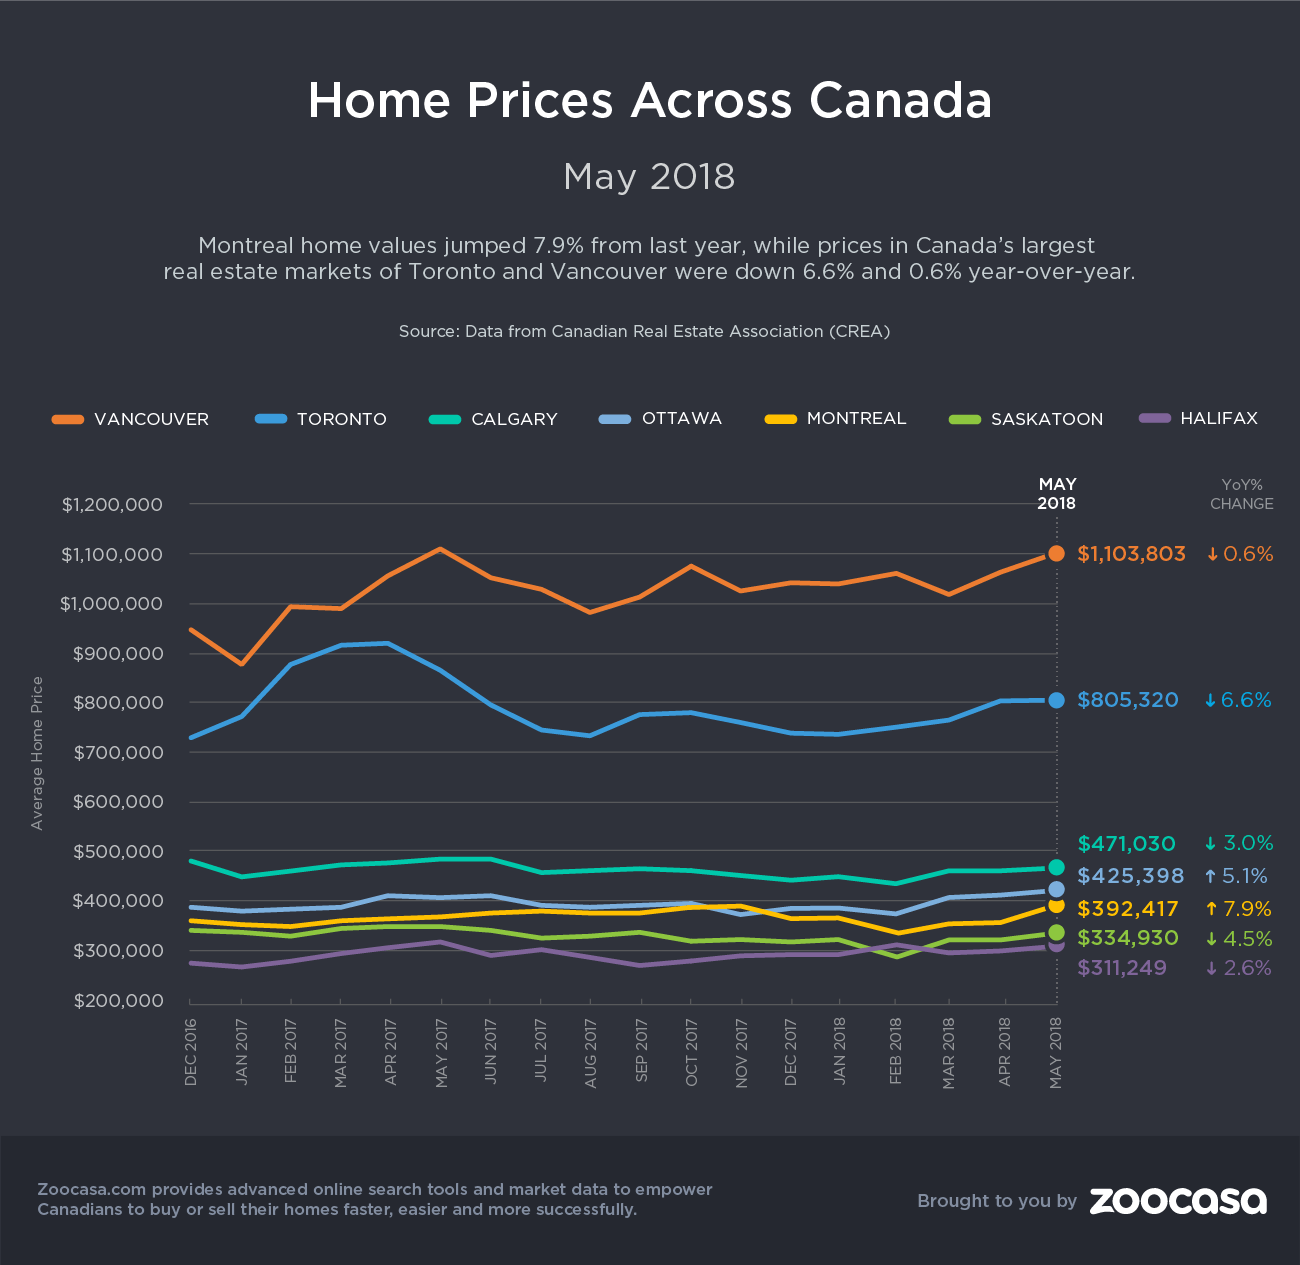 canada-home-prices-may-2018-zoocasa